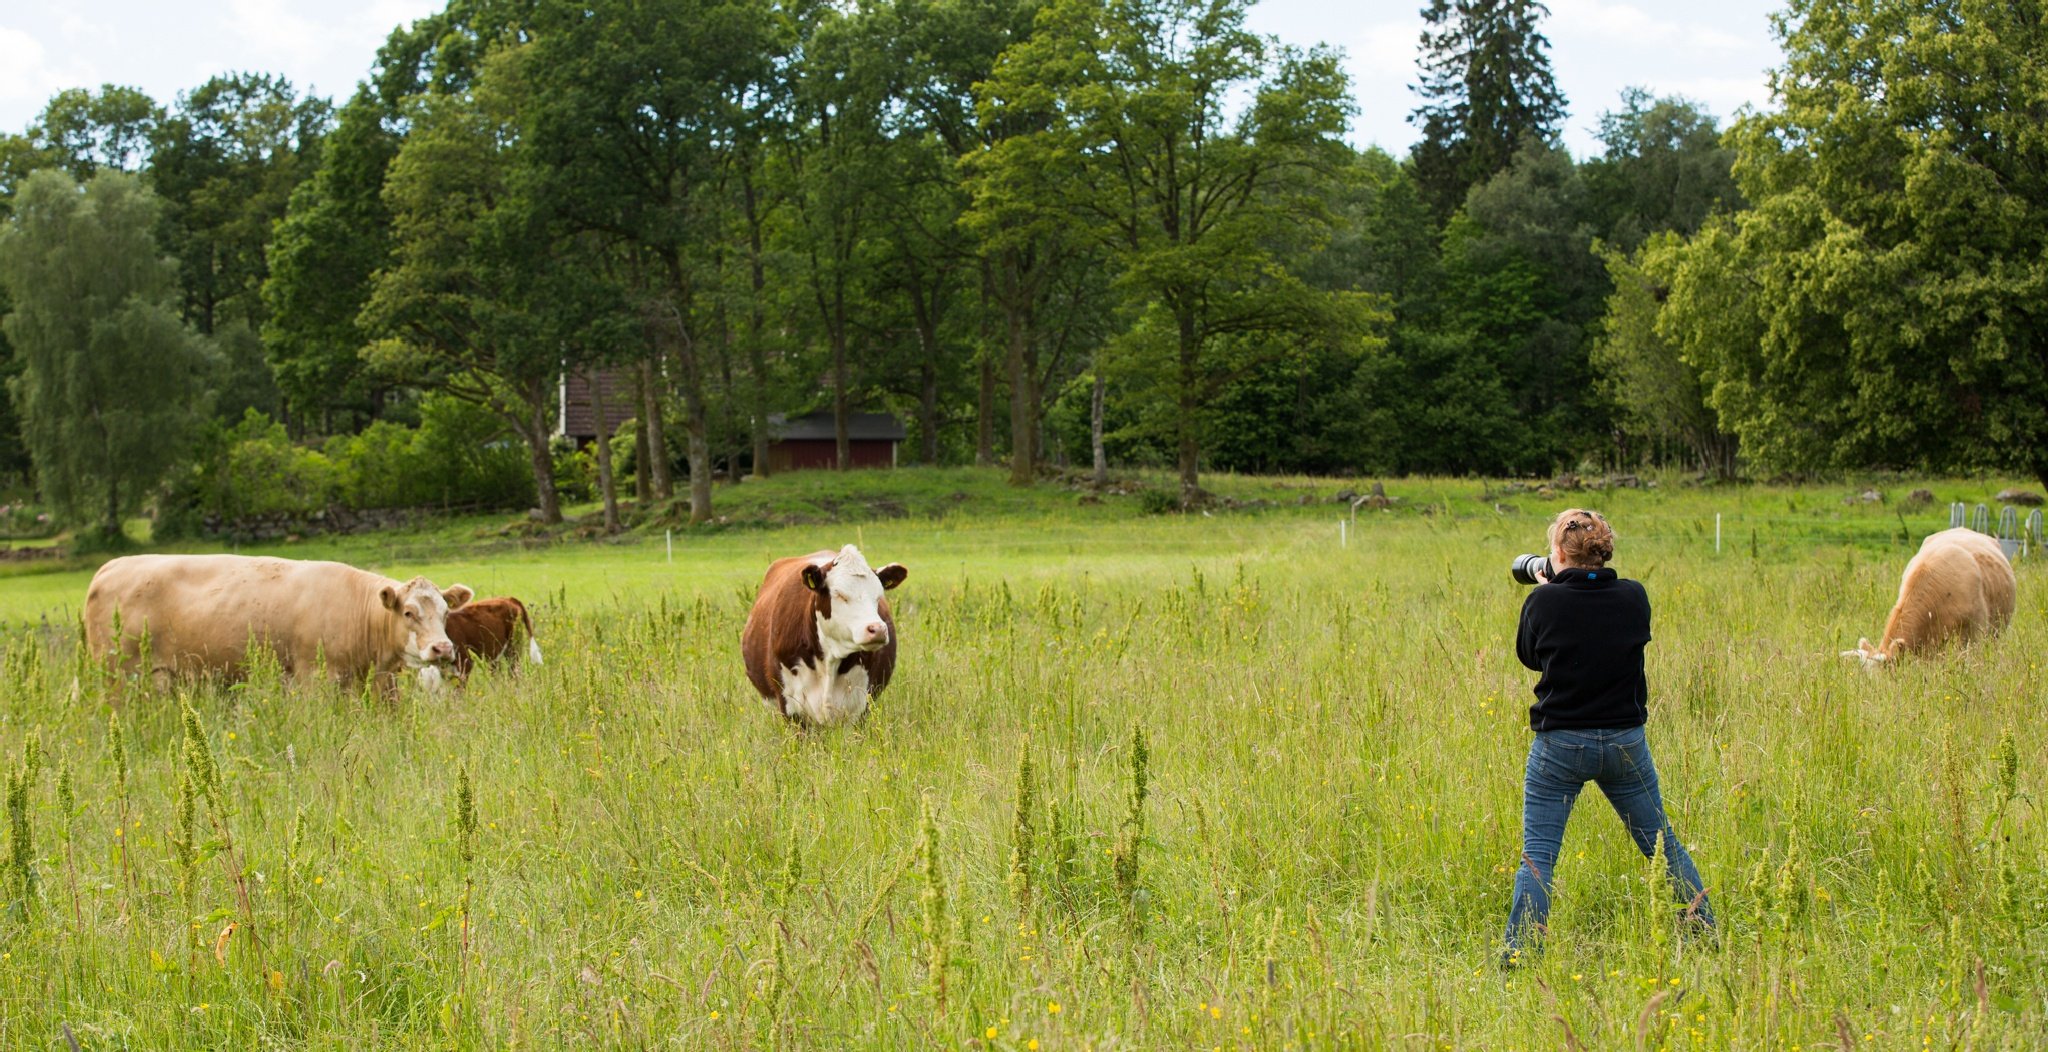 Shooting cows like a pro by Linda Augustsson